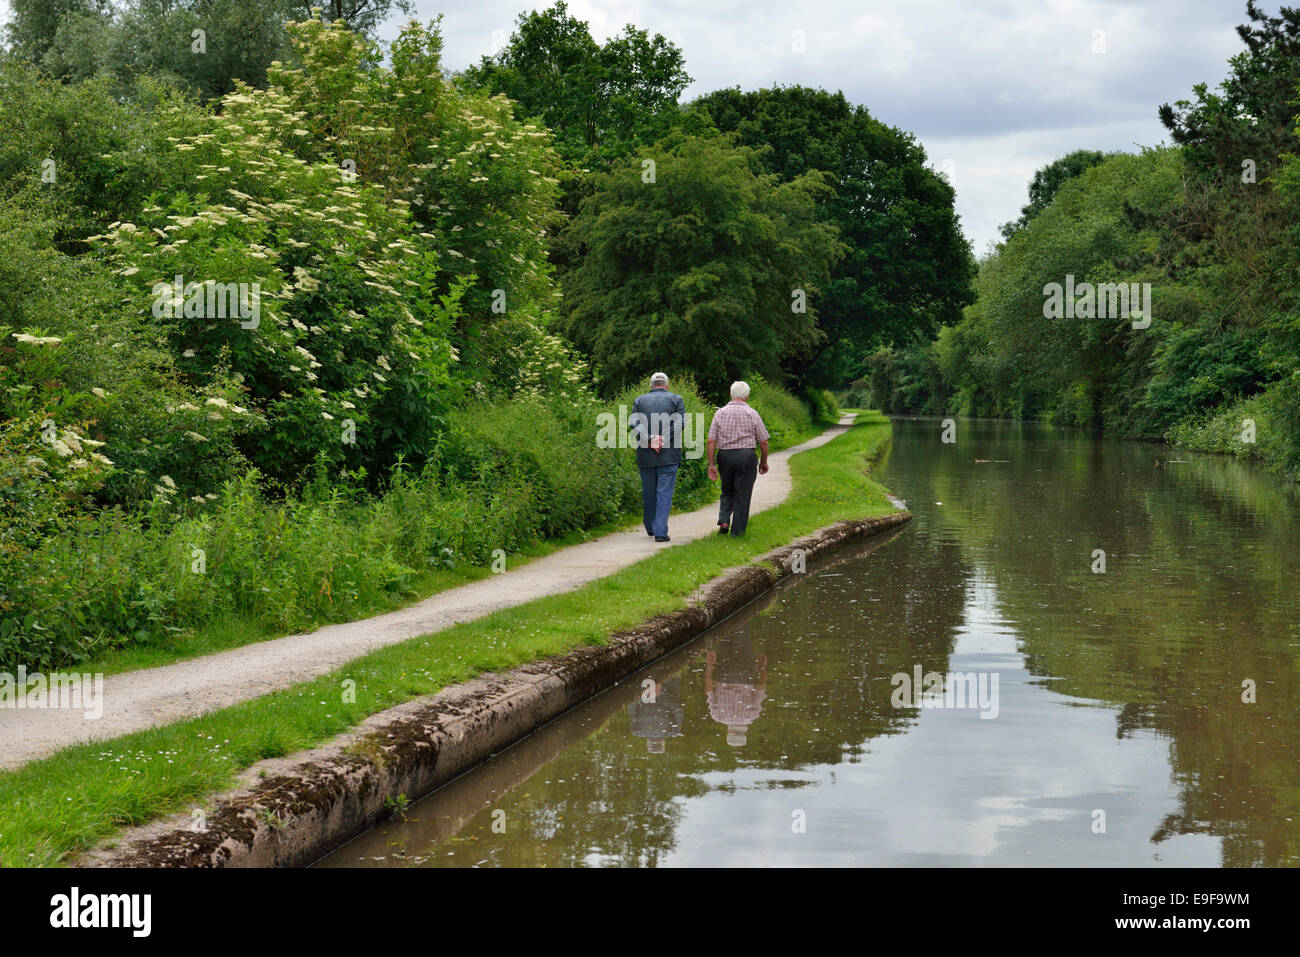 Two men walking along the canal towpath, West Midlands, United Kingdom - Stock Image